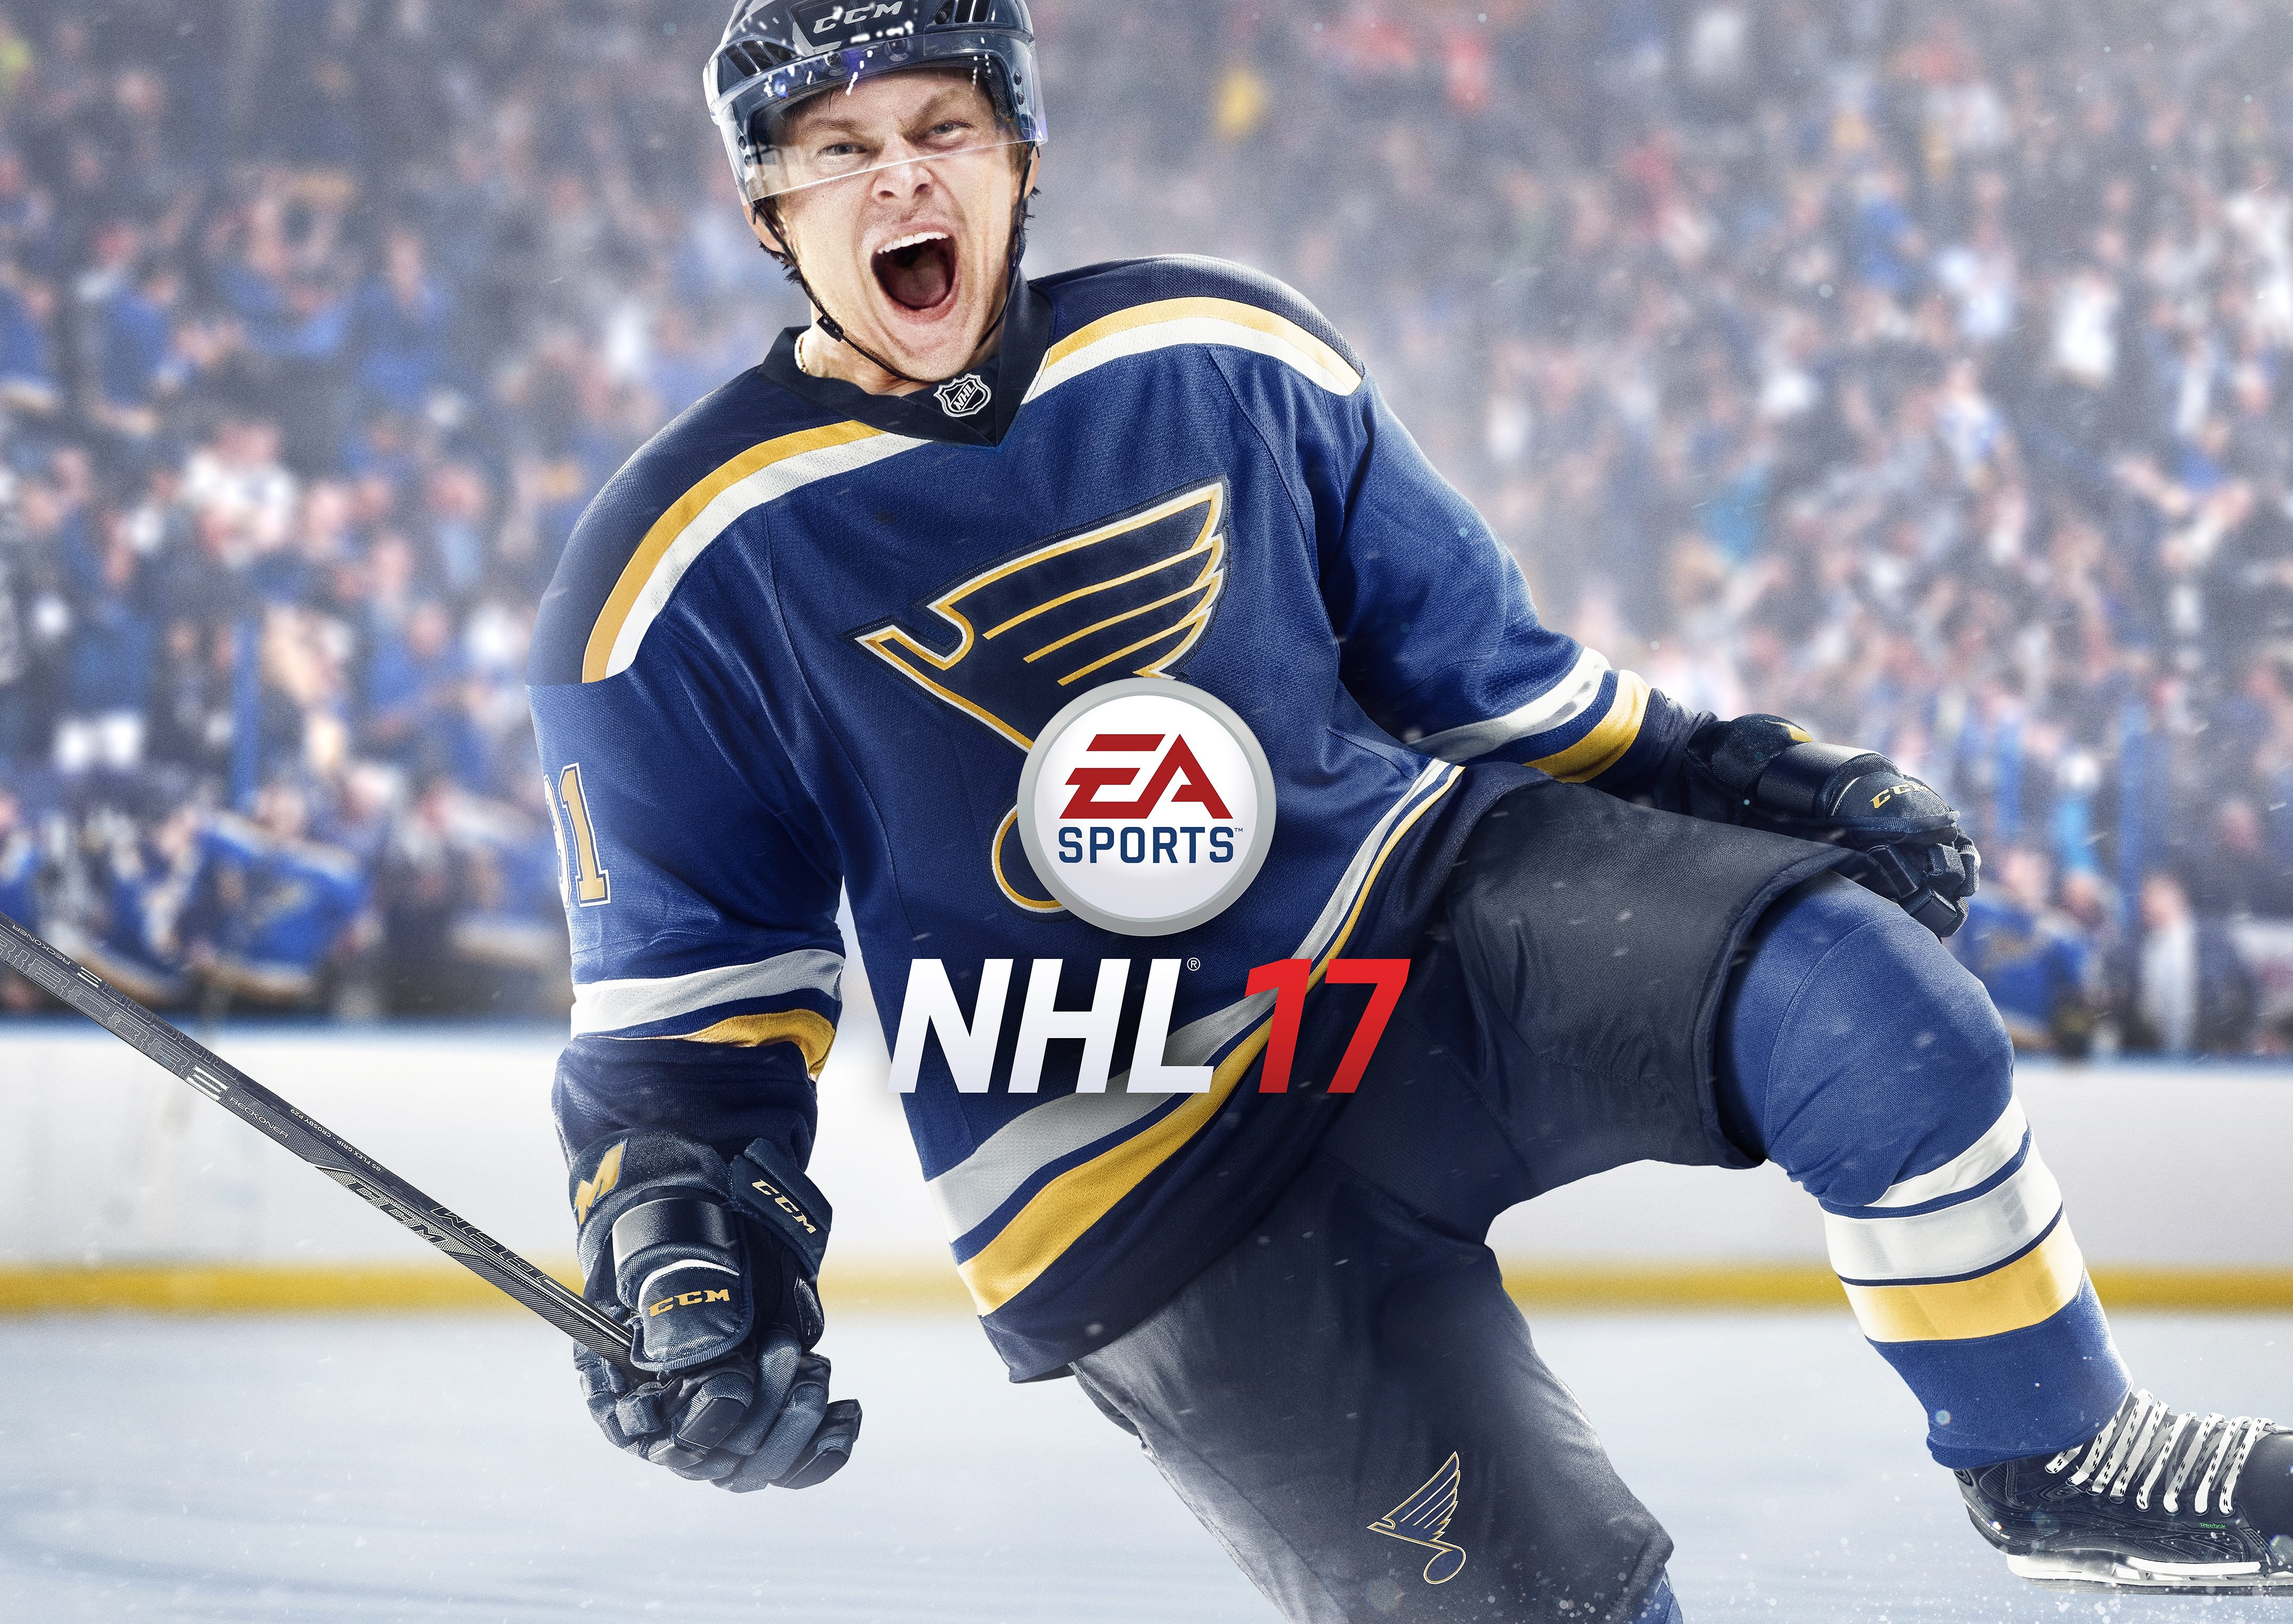 NHL 17 Now Available for PS4 and Xbox One